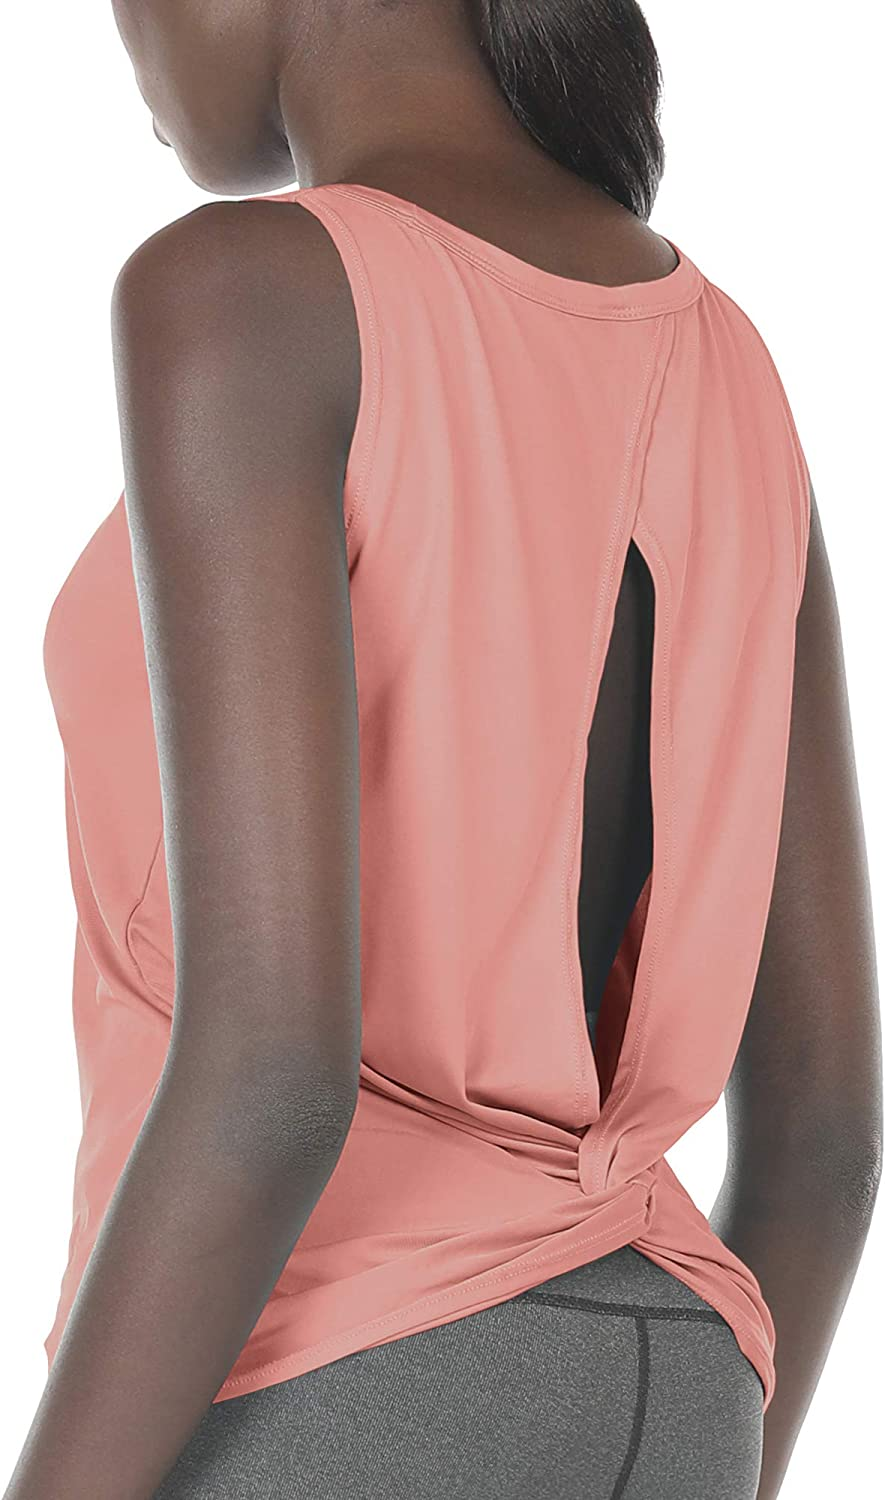 icyzone Workout Tank Tops 2021 spring and summer new for Women Tucson Mall Athletic Back - Open Exercis